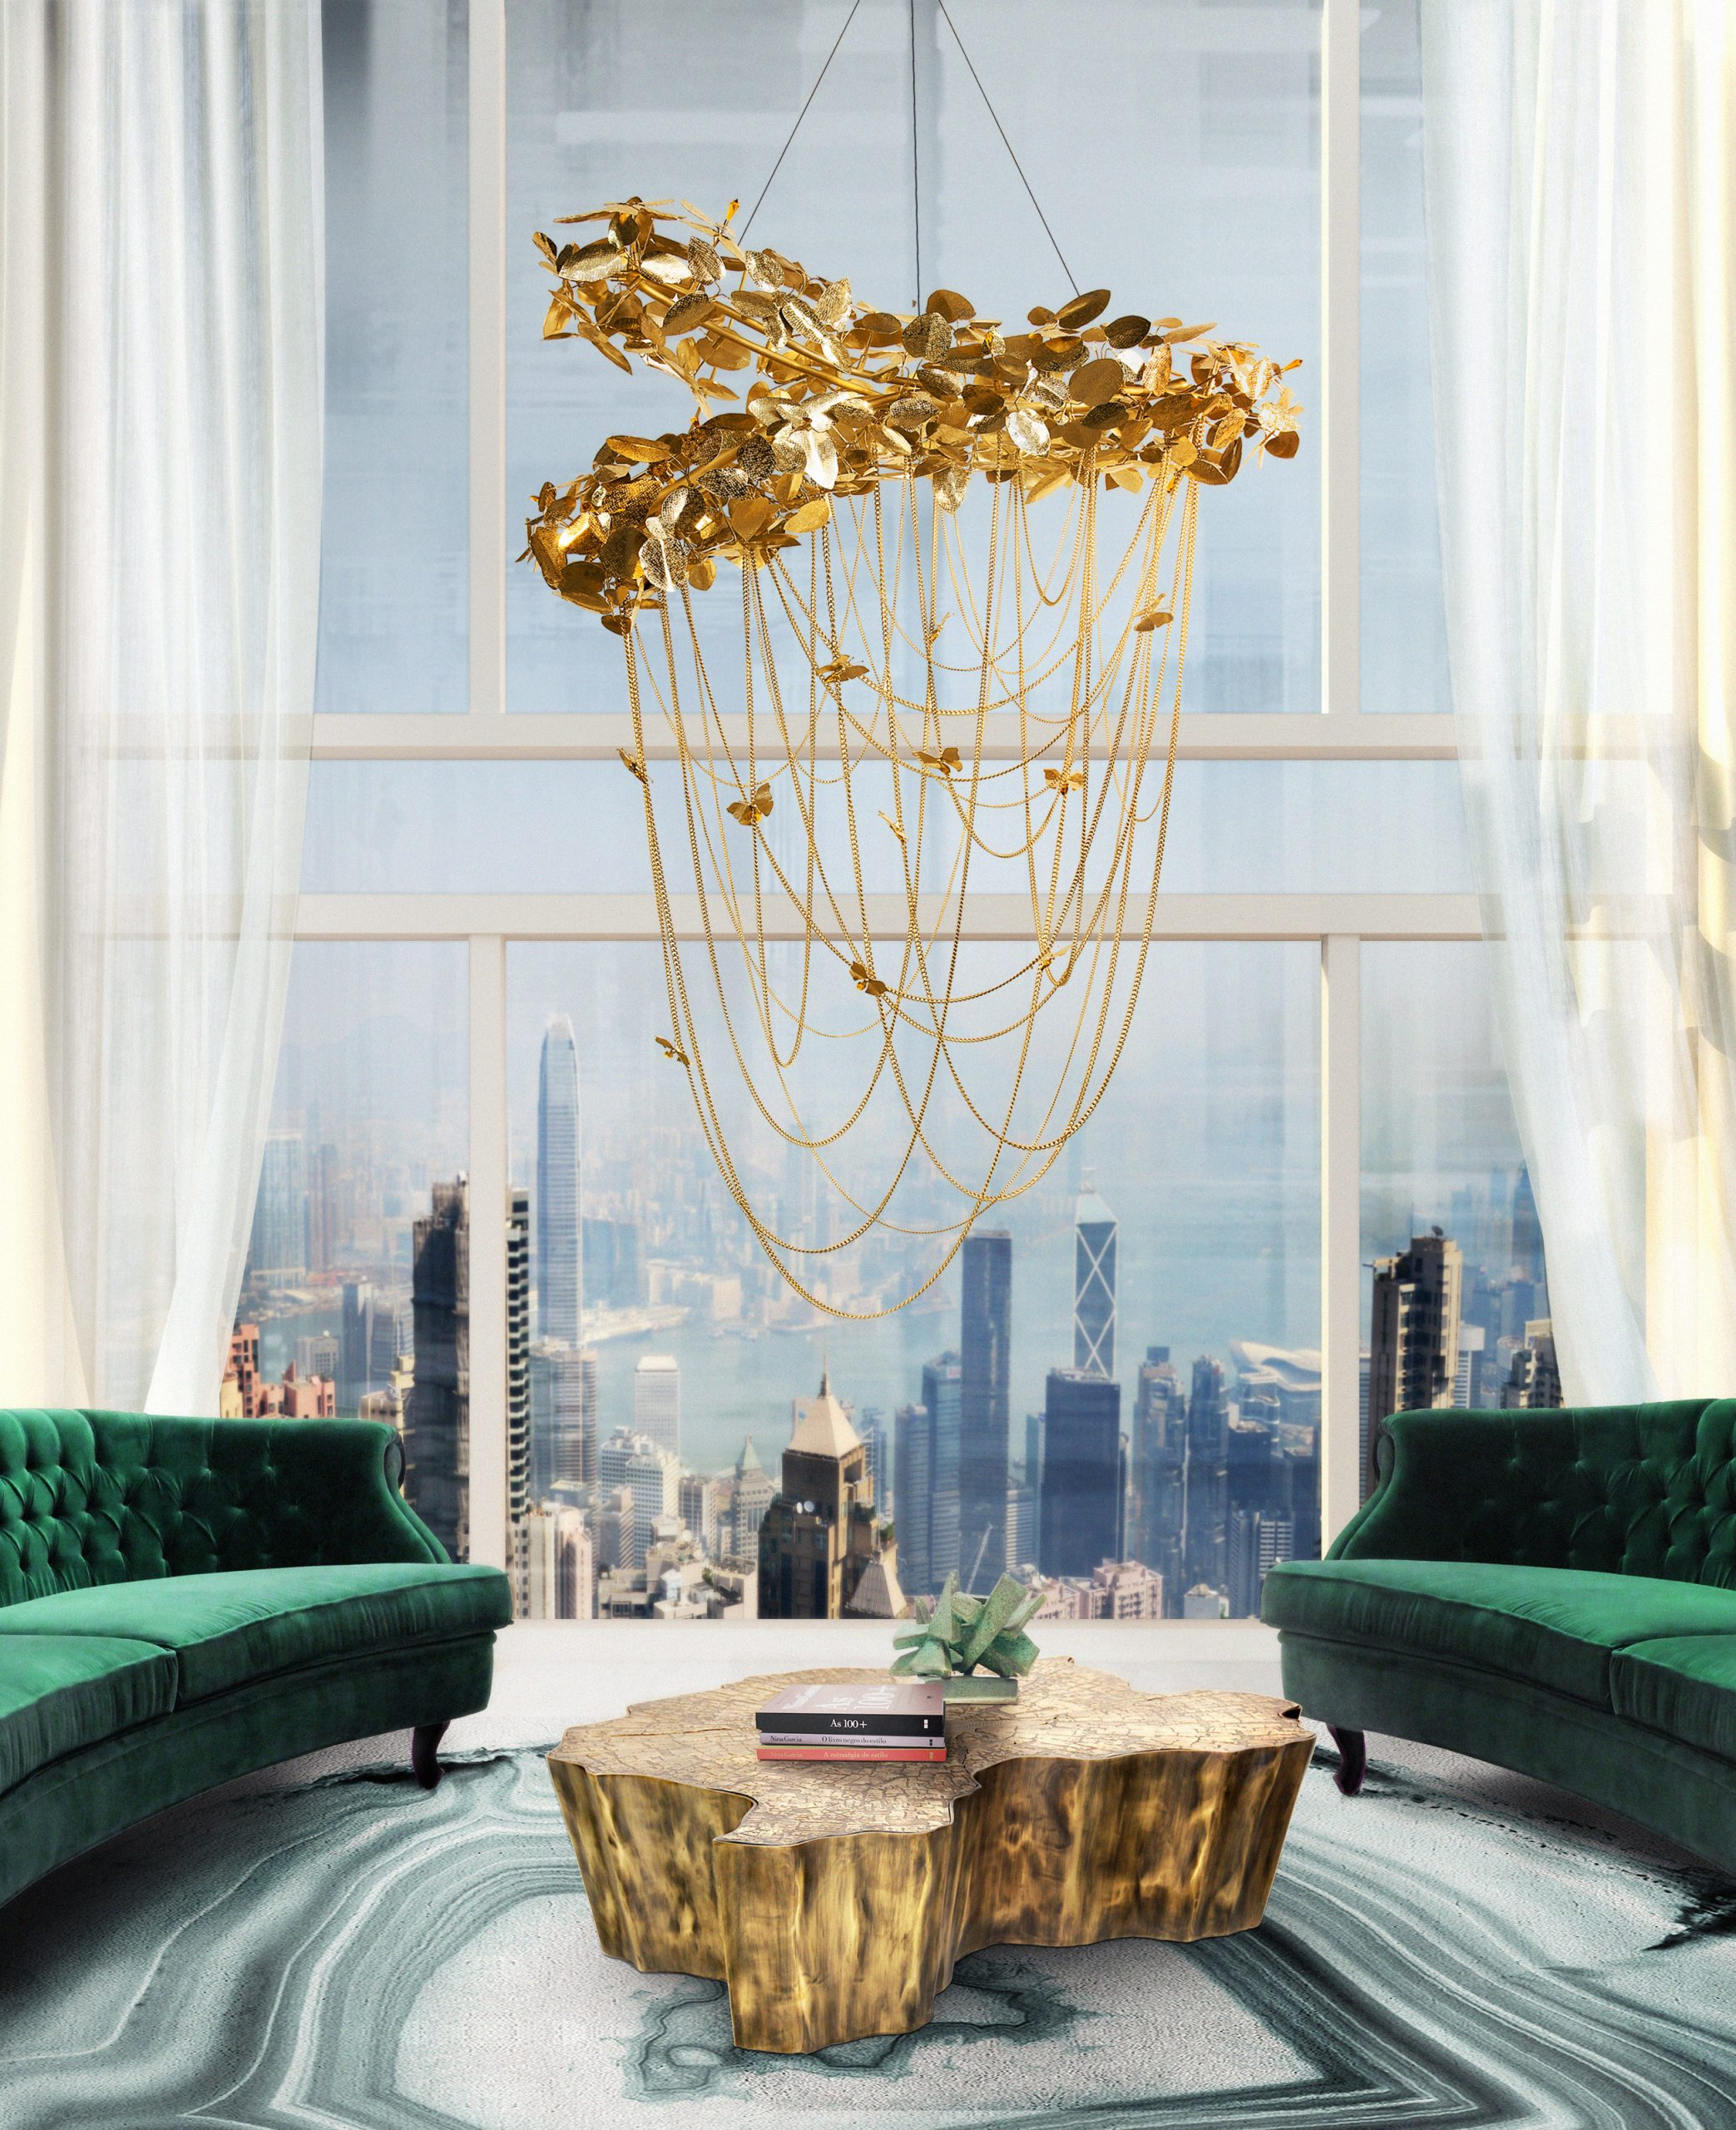 Spring Chandelier Decorations For The Next Season